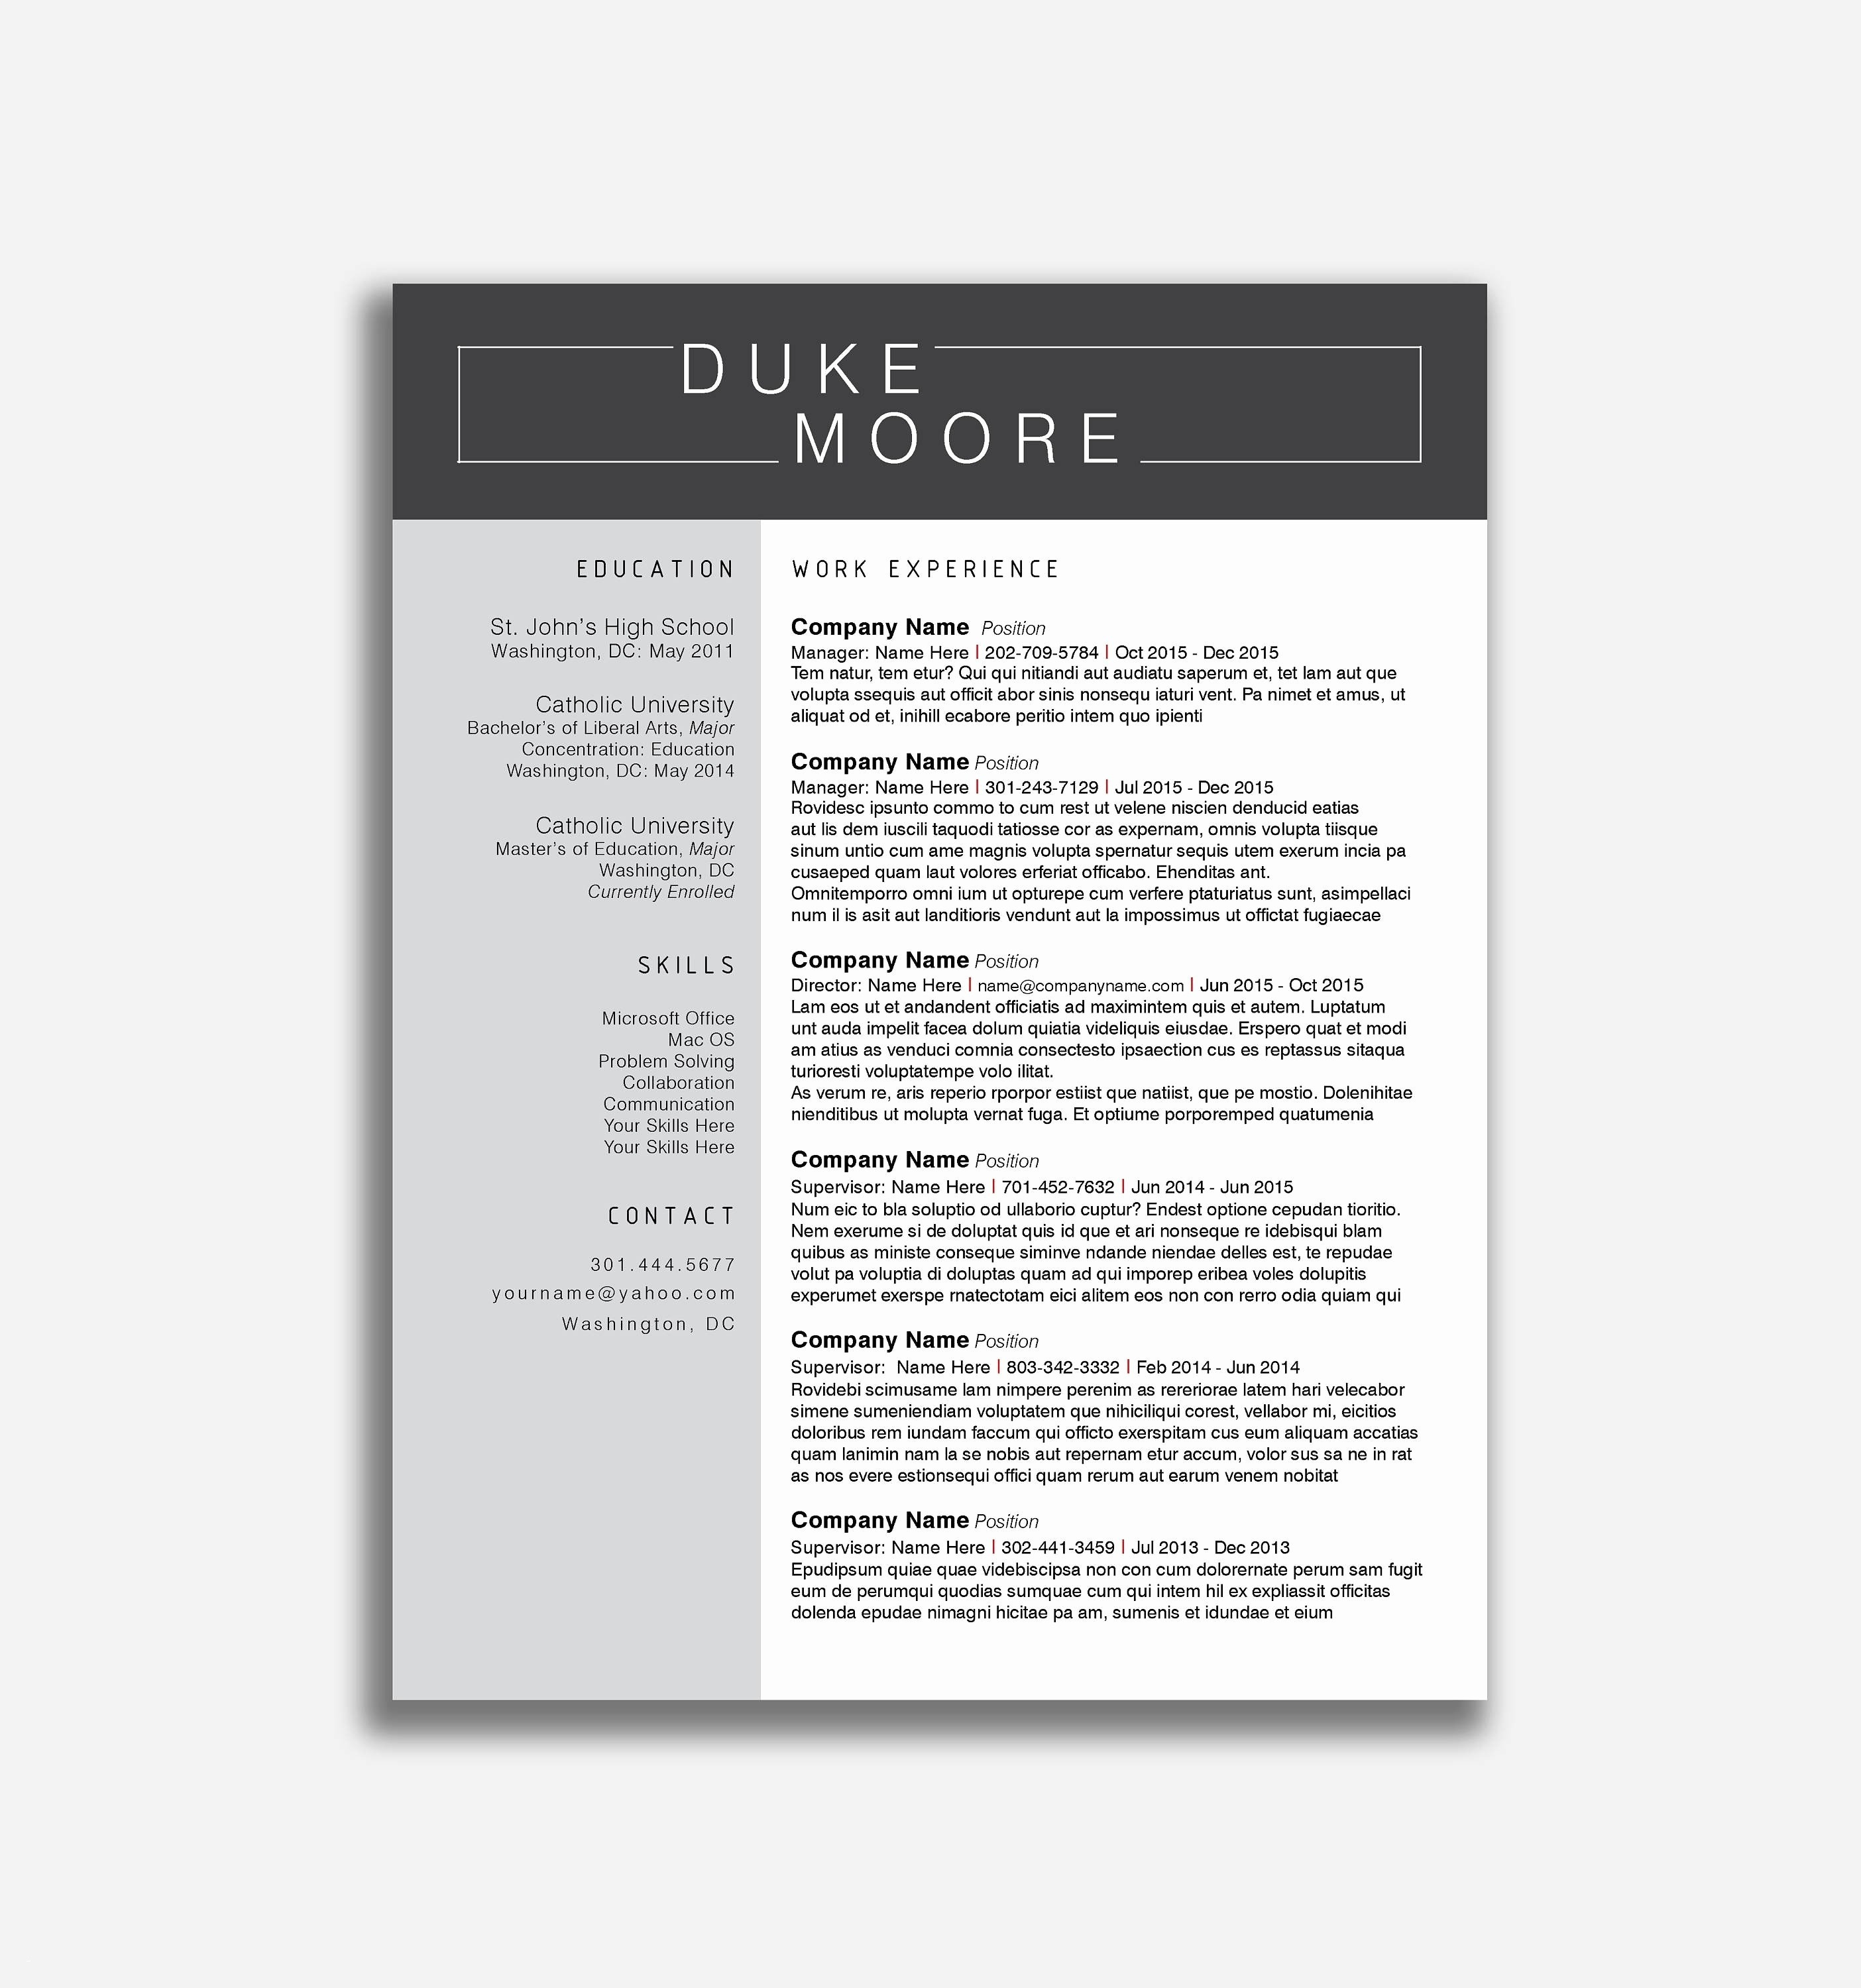 Free Modern Resume Templates for Word - Free Creative Resume Templates Microsoft Word Best Resume